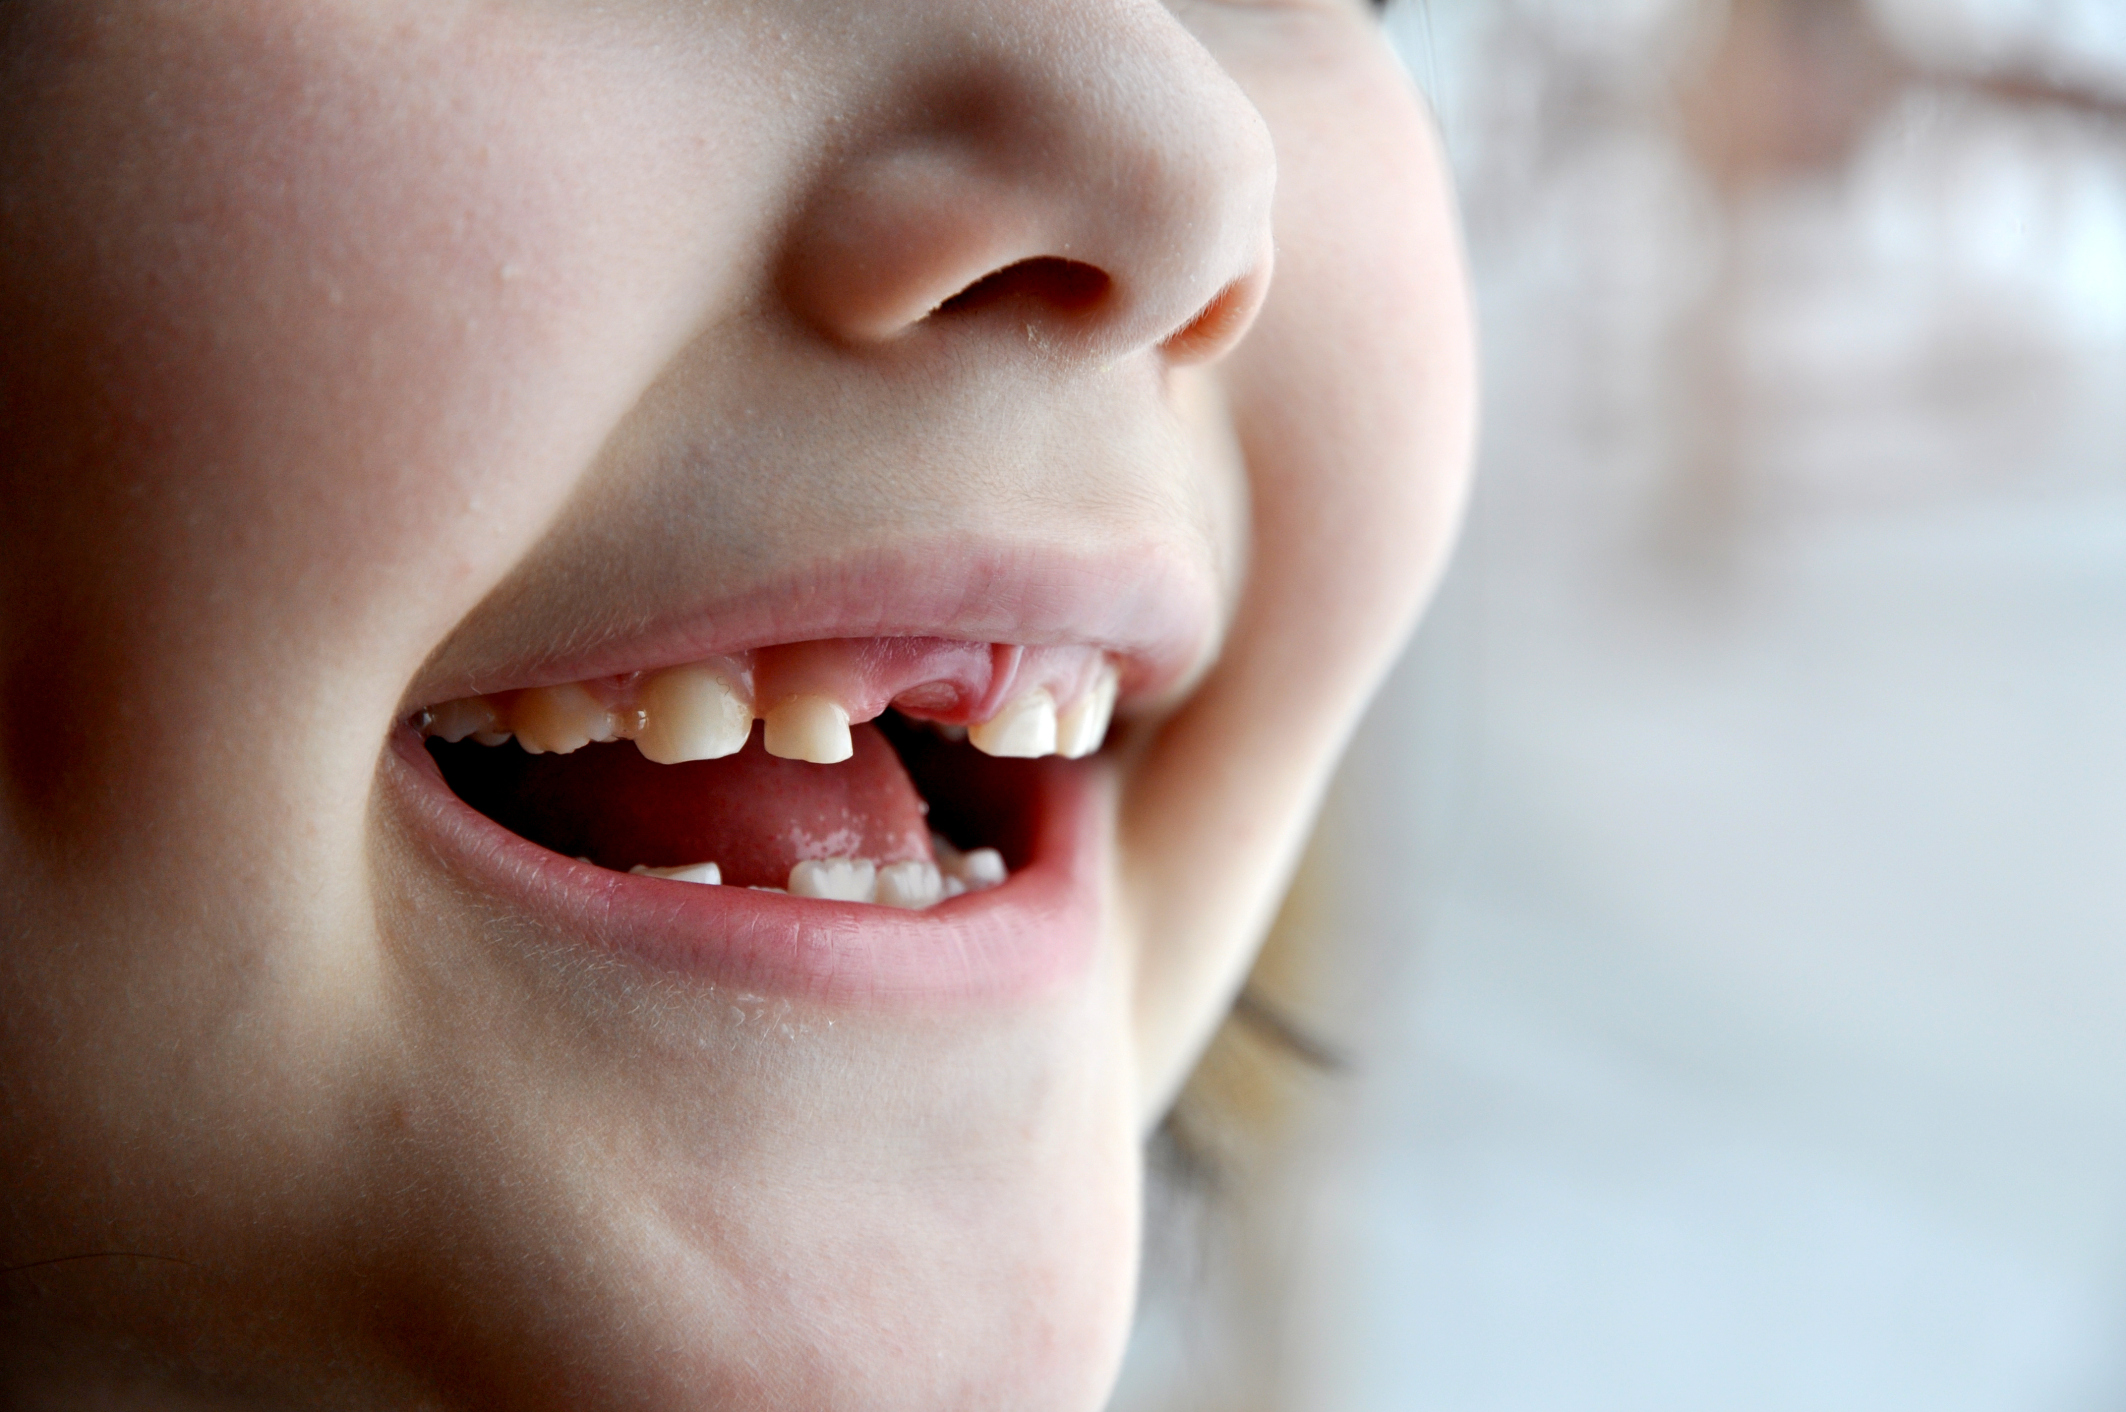 Child missing a tooth